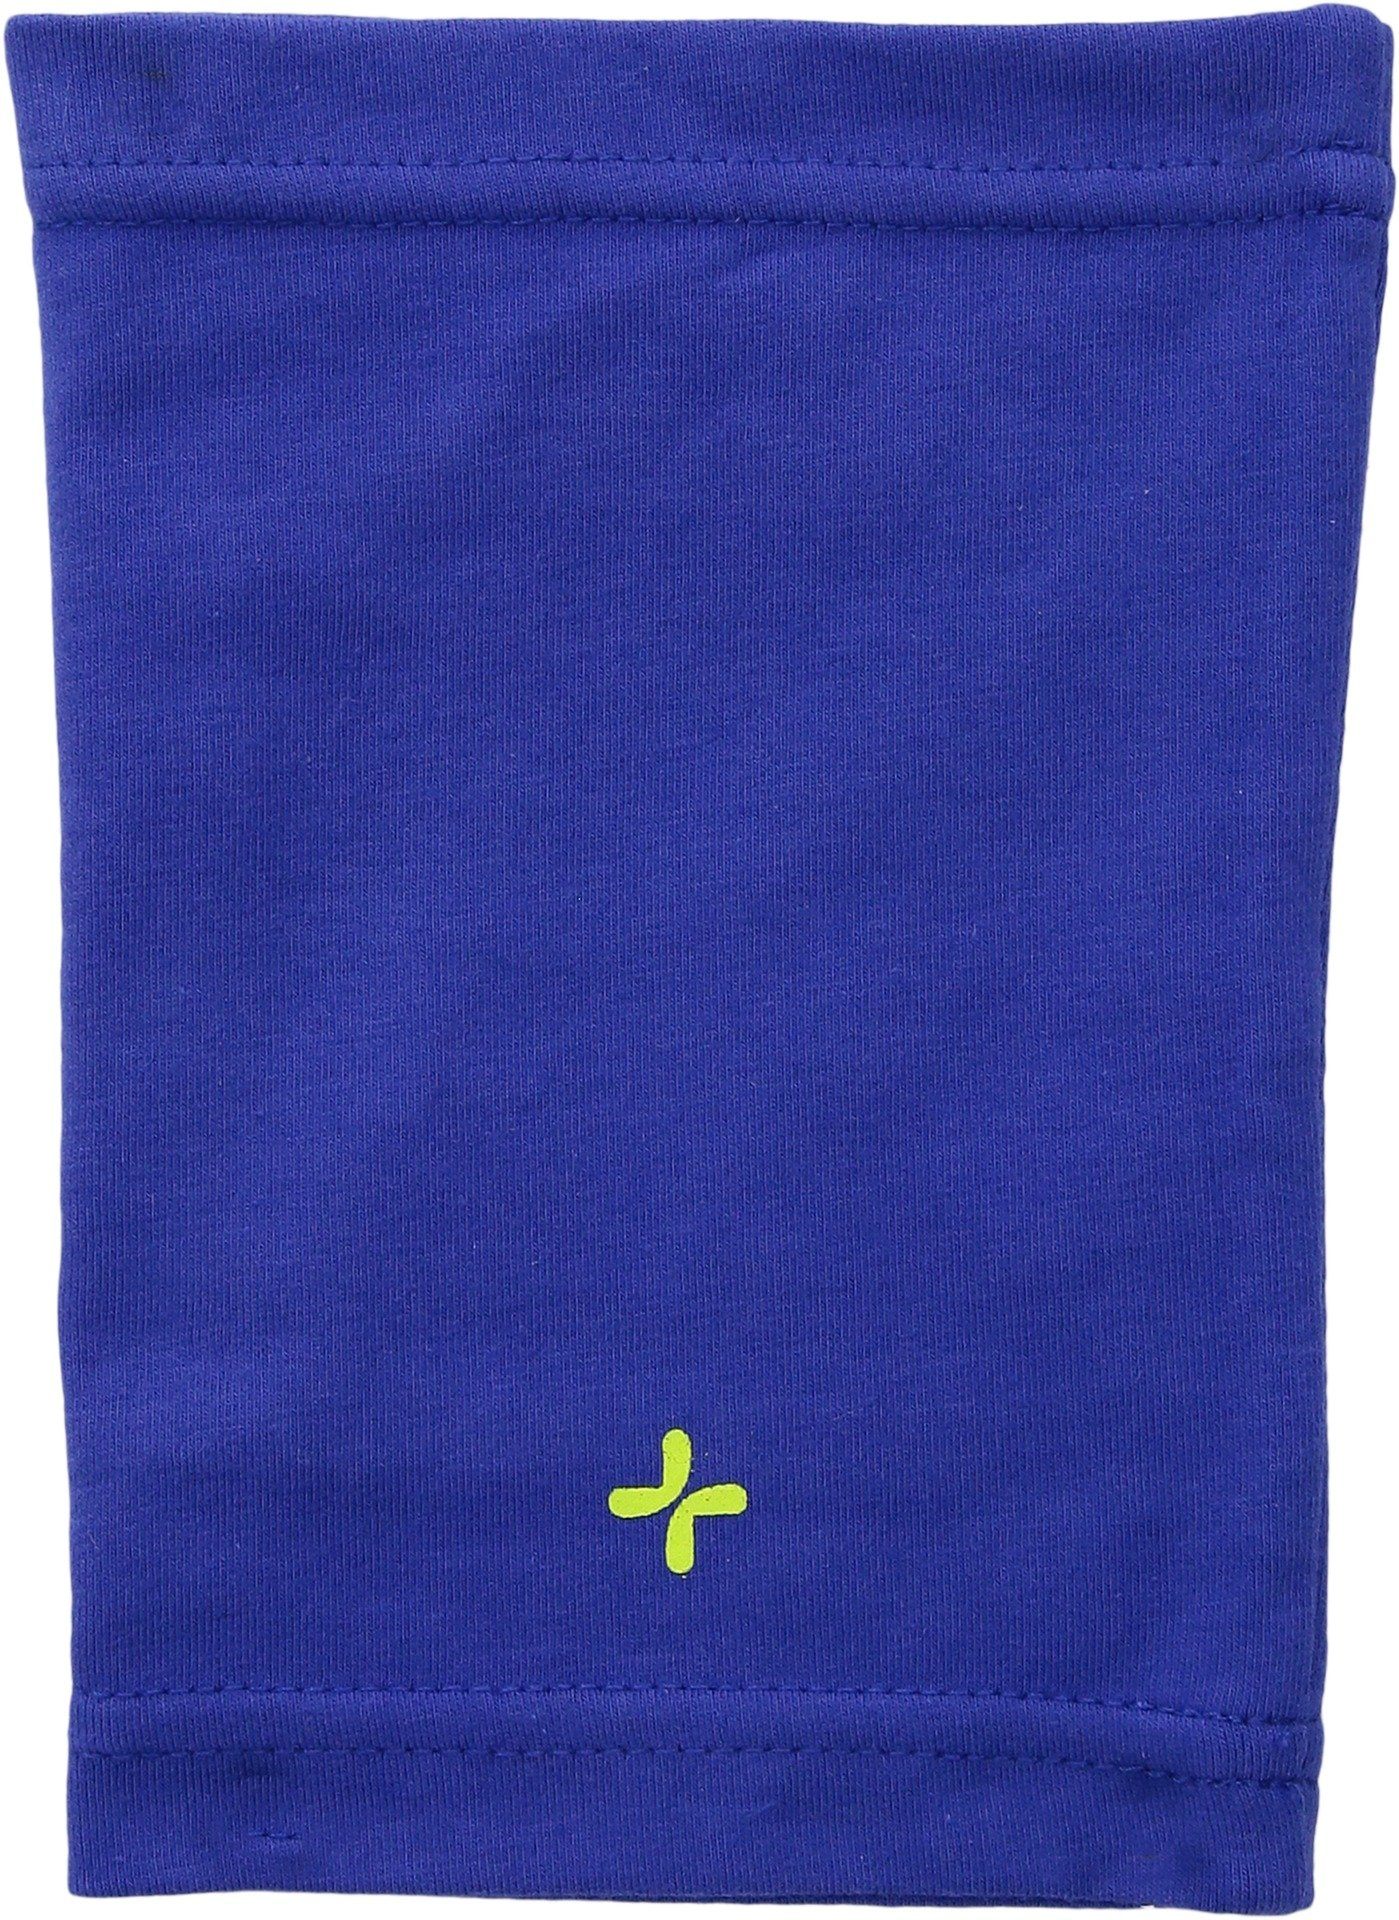 Care+Wear Ultra-Soft Antimicrobial PICC Line Cover, Marine